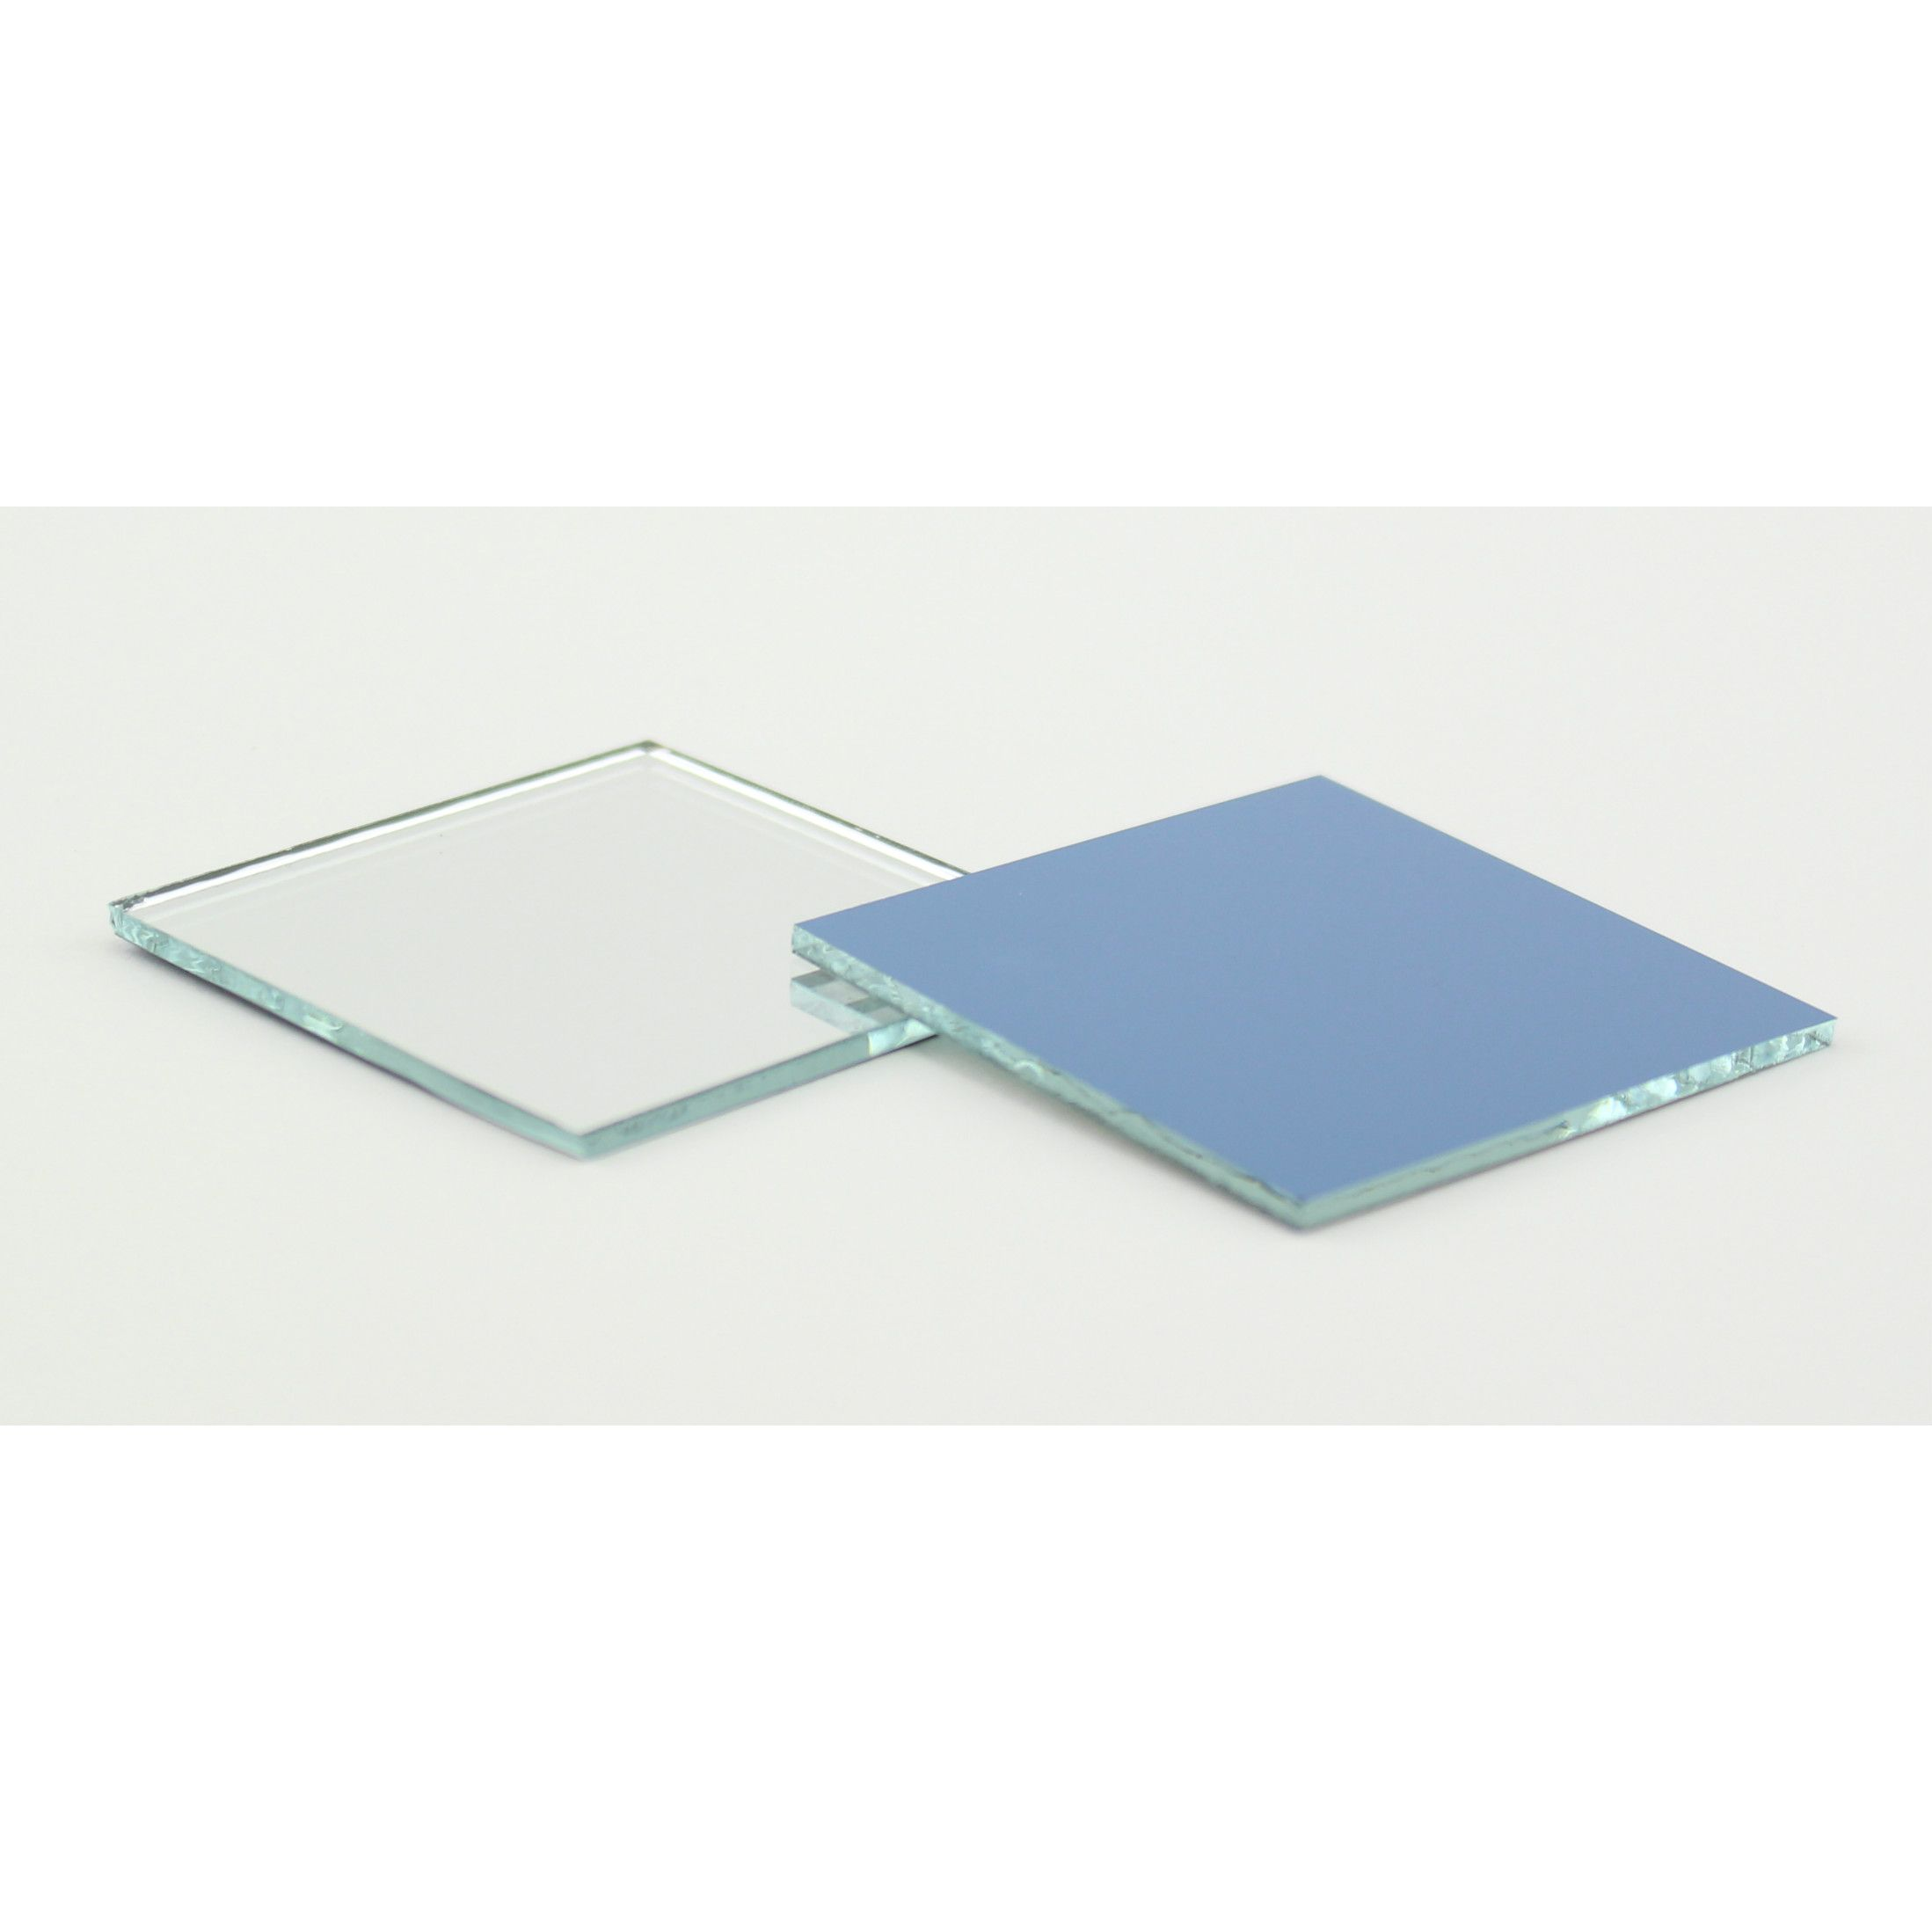 Small Mirror Pieces: 2 Inch Glass Craft Small Square Mirrors 4 Pieces Mosaic